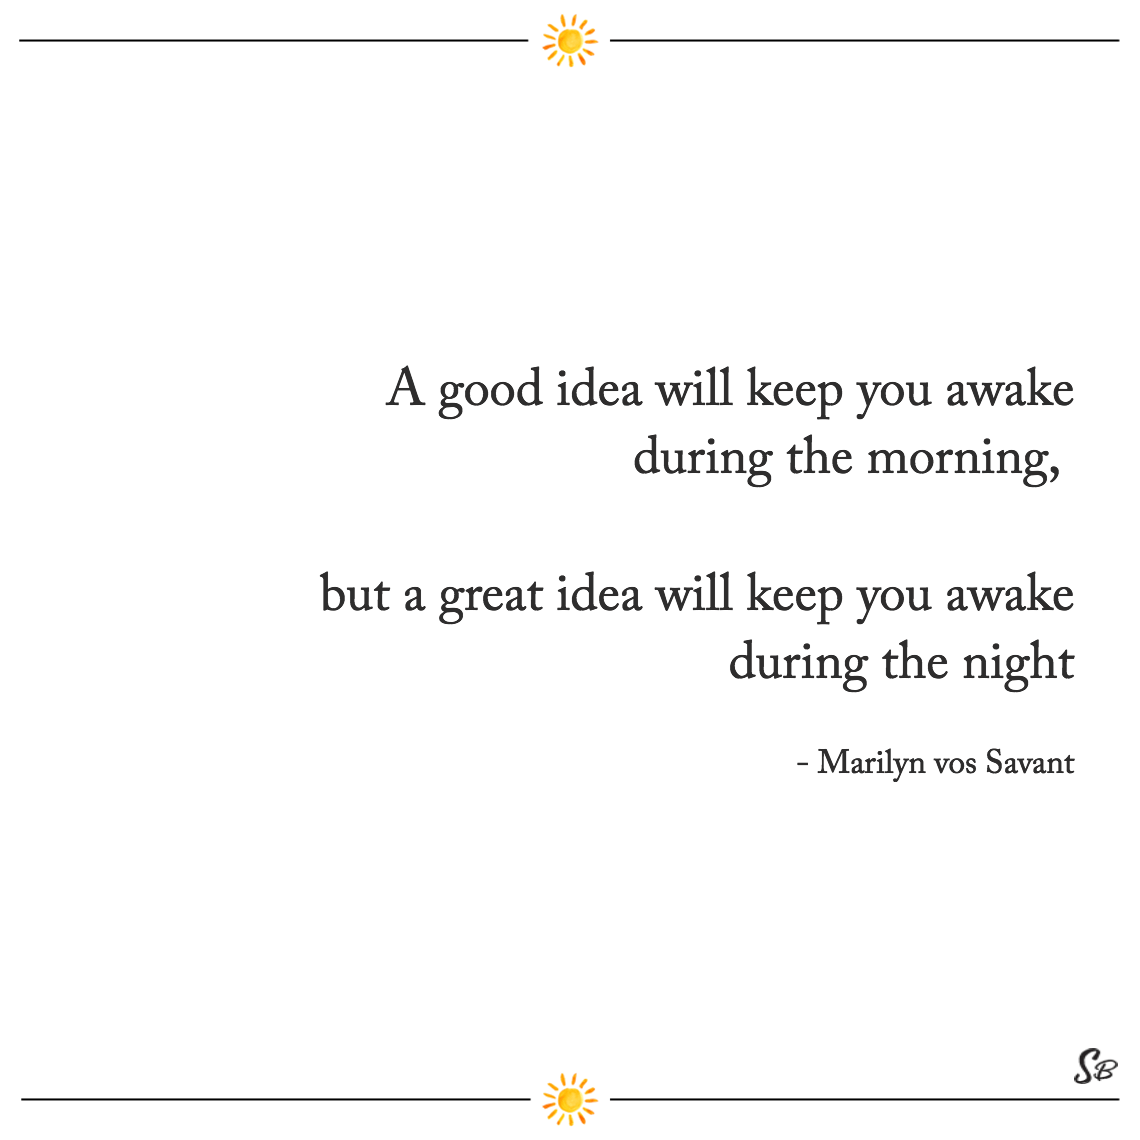 A good idea will keep you awake during the morning, but a great idea will keep you awake during the night marilyn vos savant